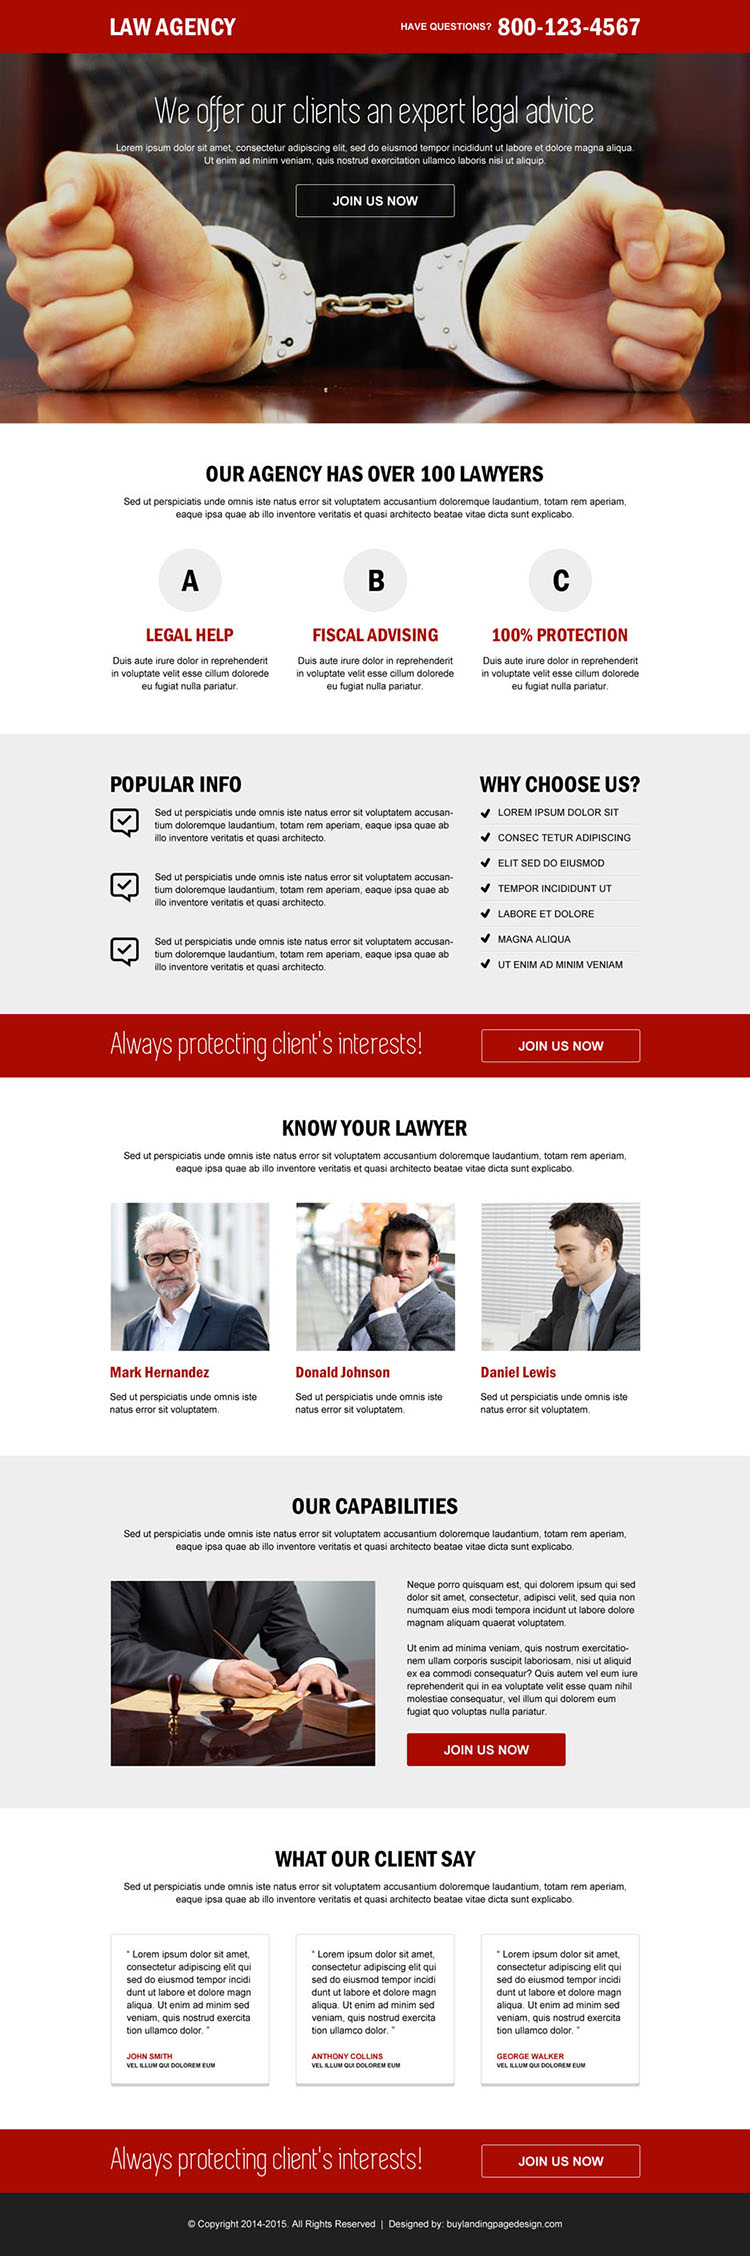 law agency call to action responsive landing page design